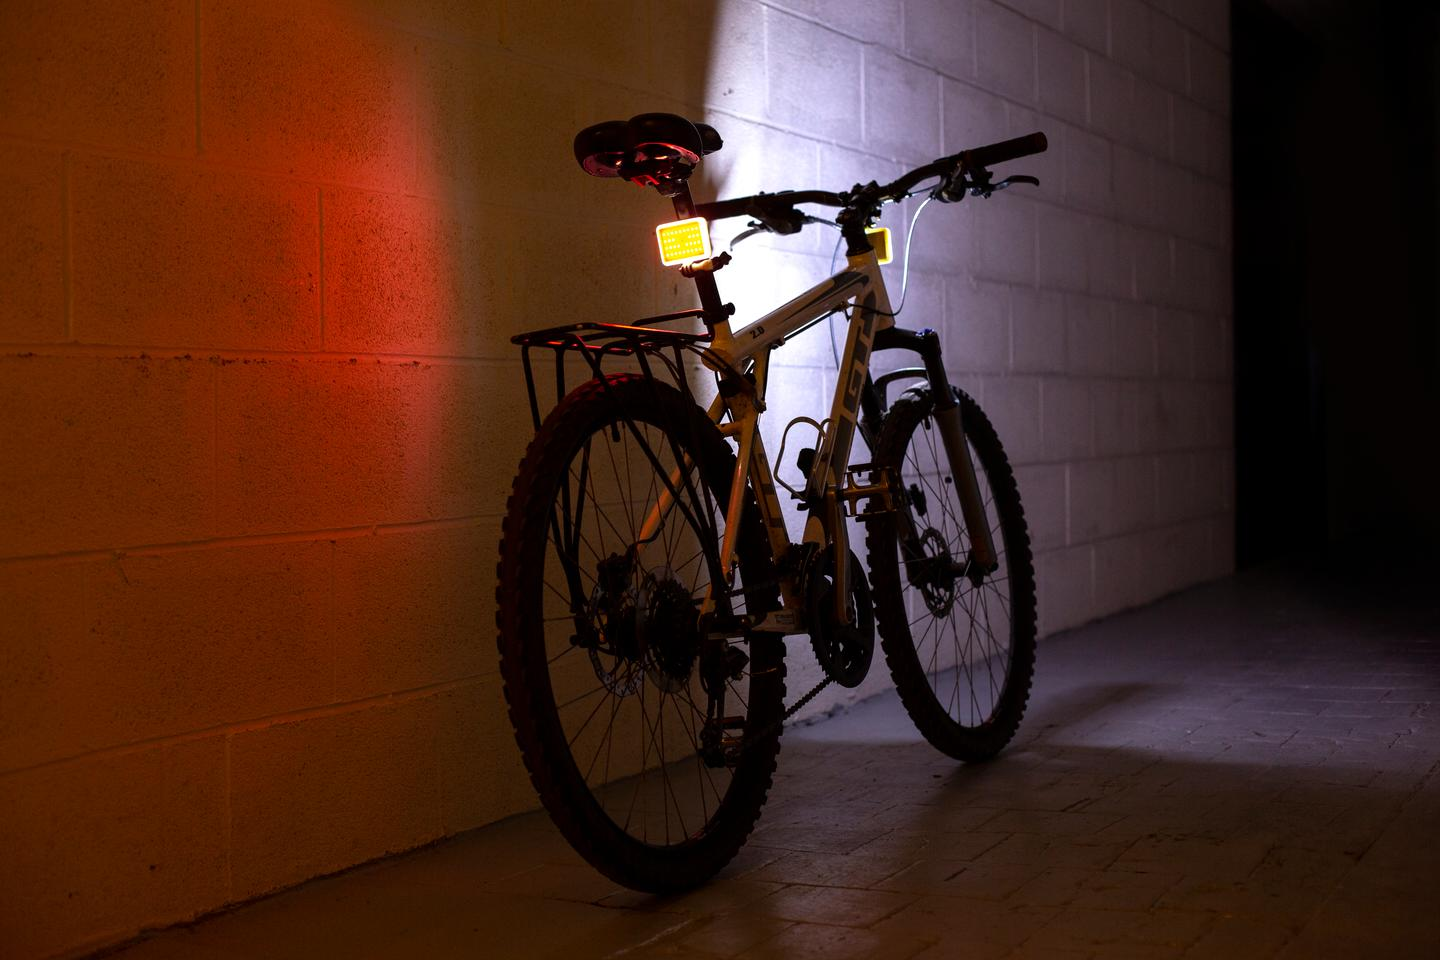 Dual Glowstone Flashlights mounted as bike lights